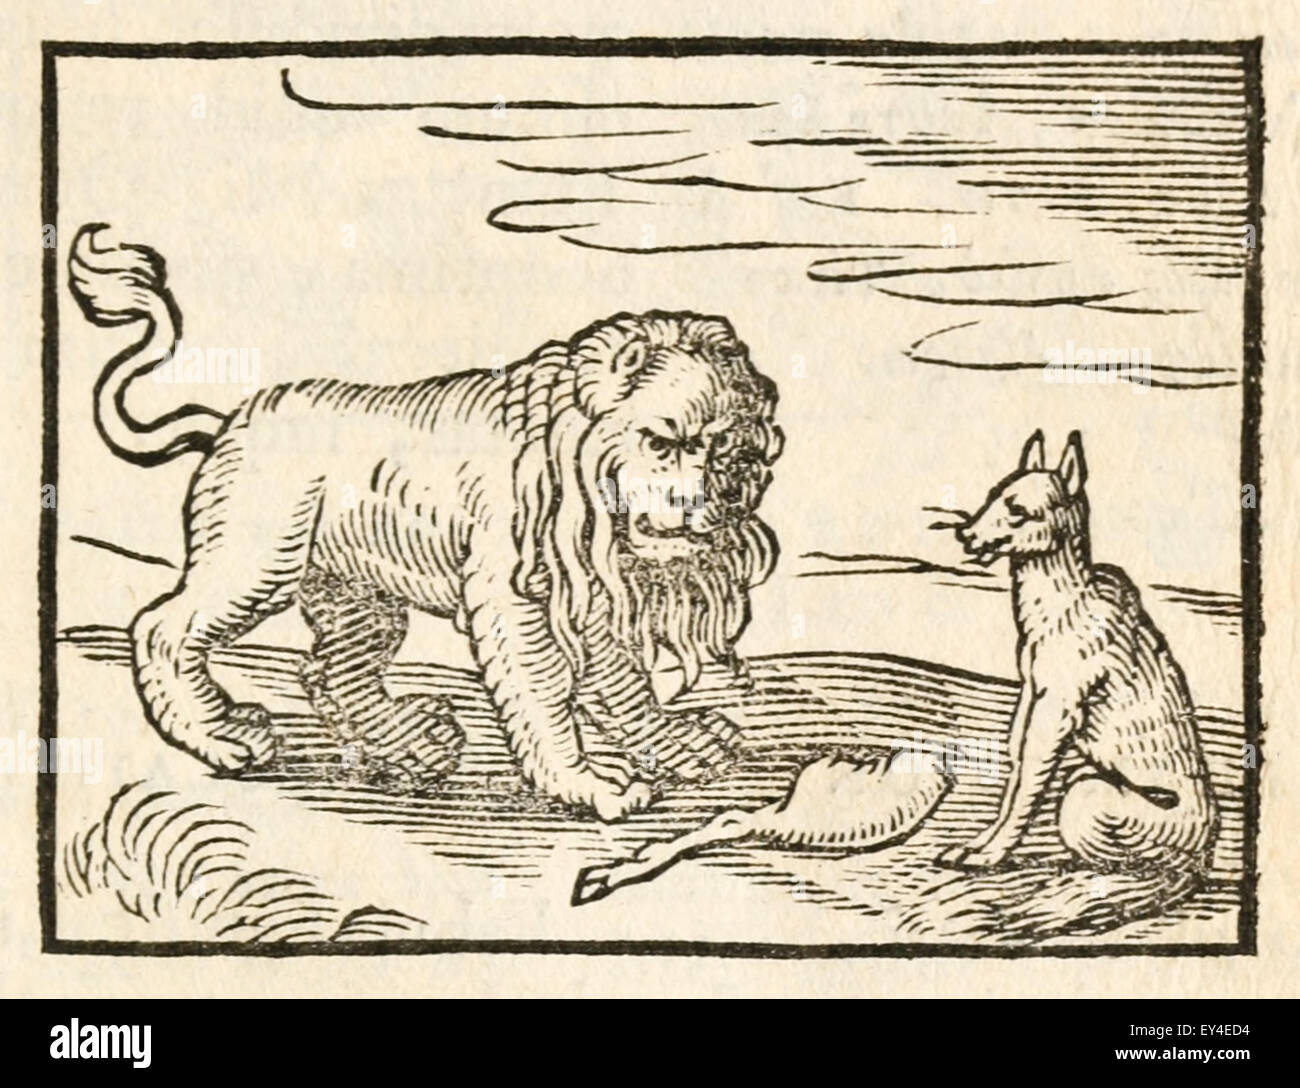 'The Lion and the Fox' fable by Aesop (circa 600BC). 17th century woodcut print illustrating Aesop's - Stock Image